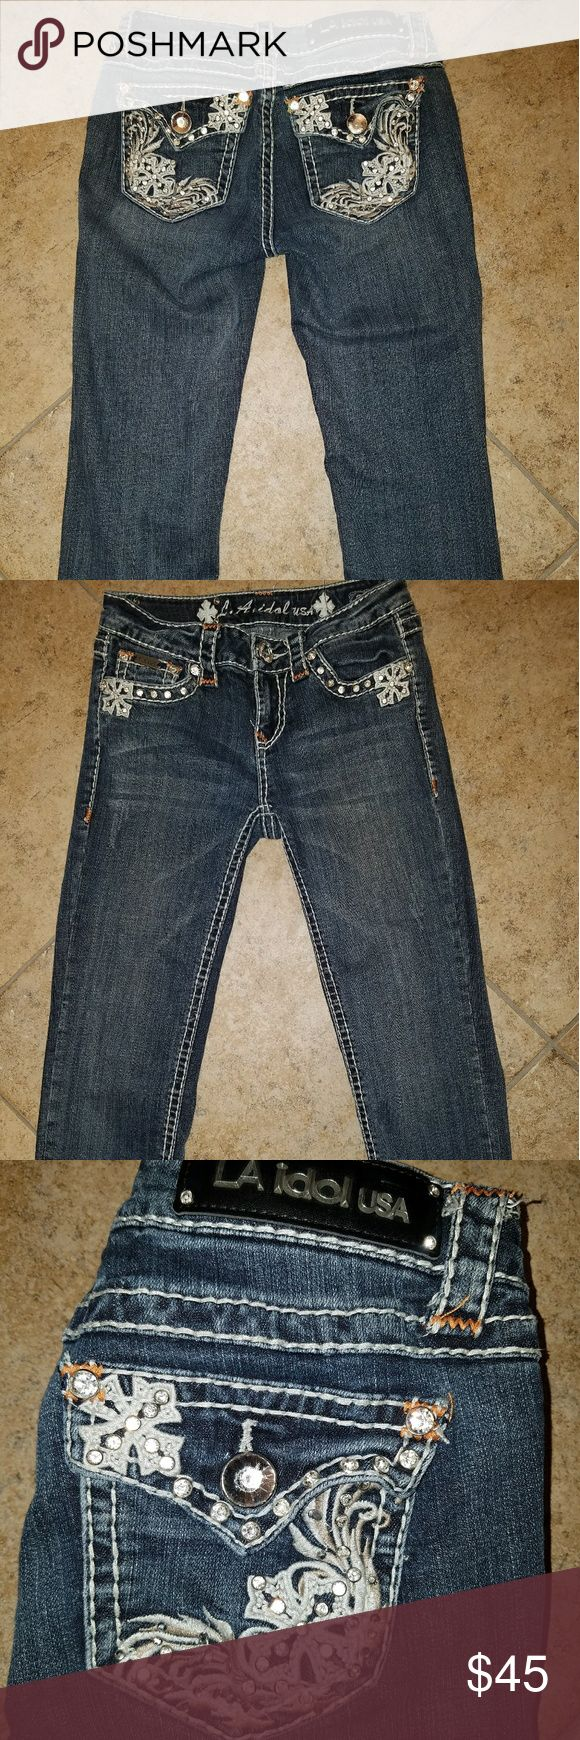 LA Idol Capri Jeans LA Idol Capri Jeans, EUC, like new!!! Lots of bling, no missing stones. Waist 28, length 18. LA Idol Jeans  Jeans Ankle & Cropped